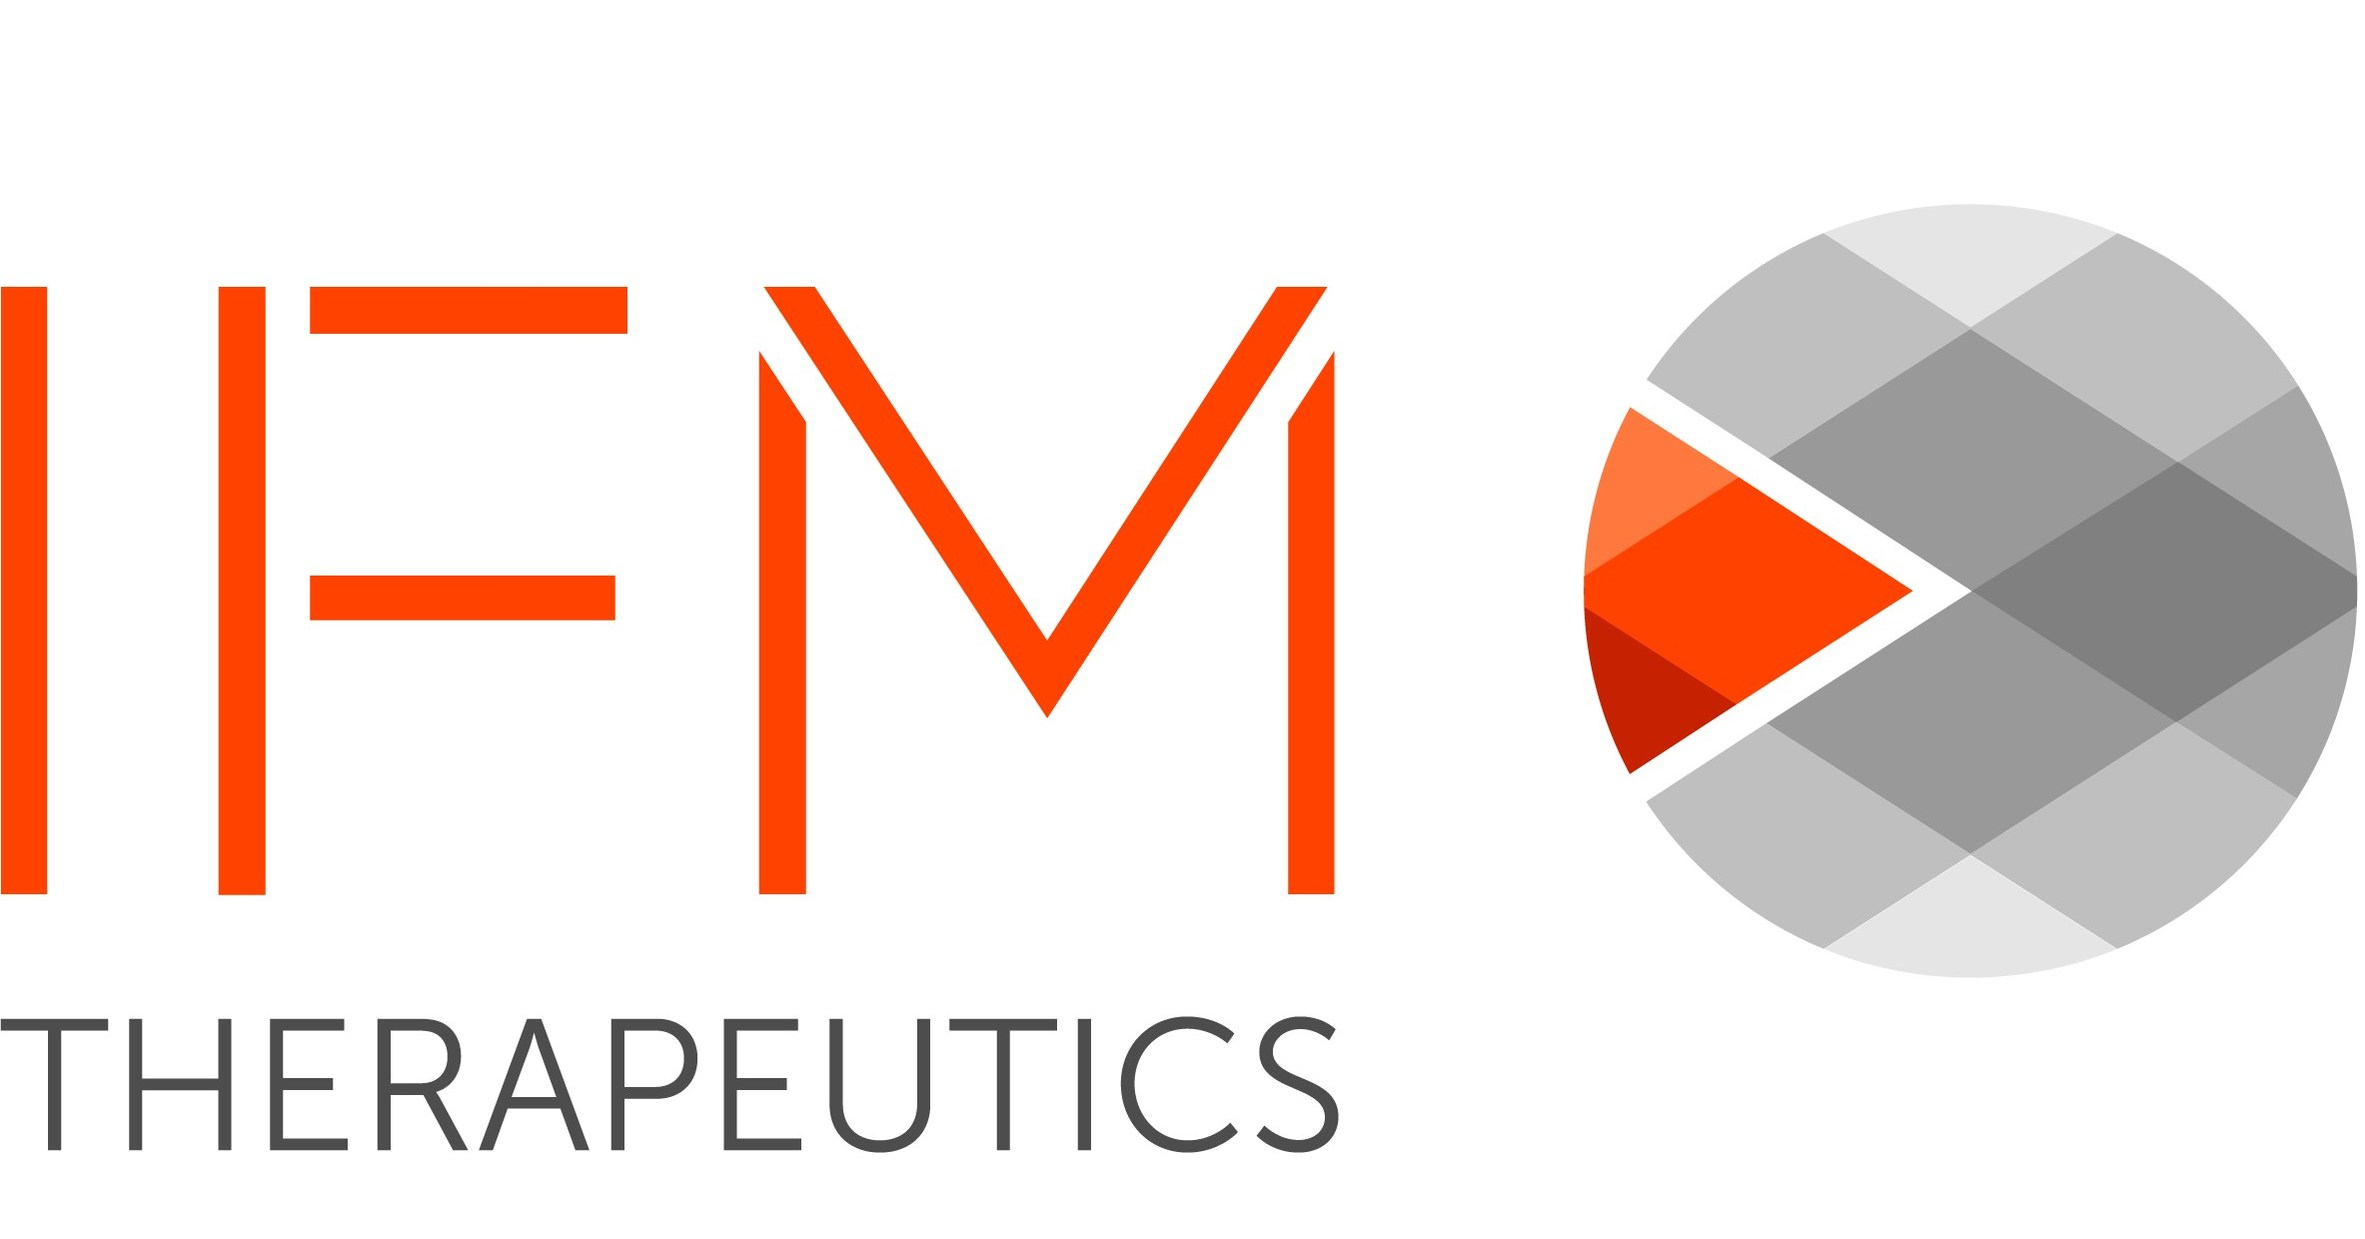 IFM Therapeutics Announces Dosing of First Subjects in Phase 1